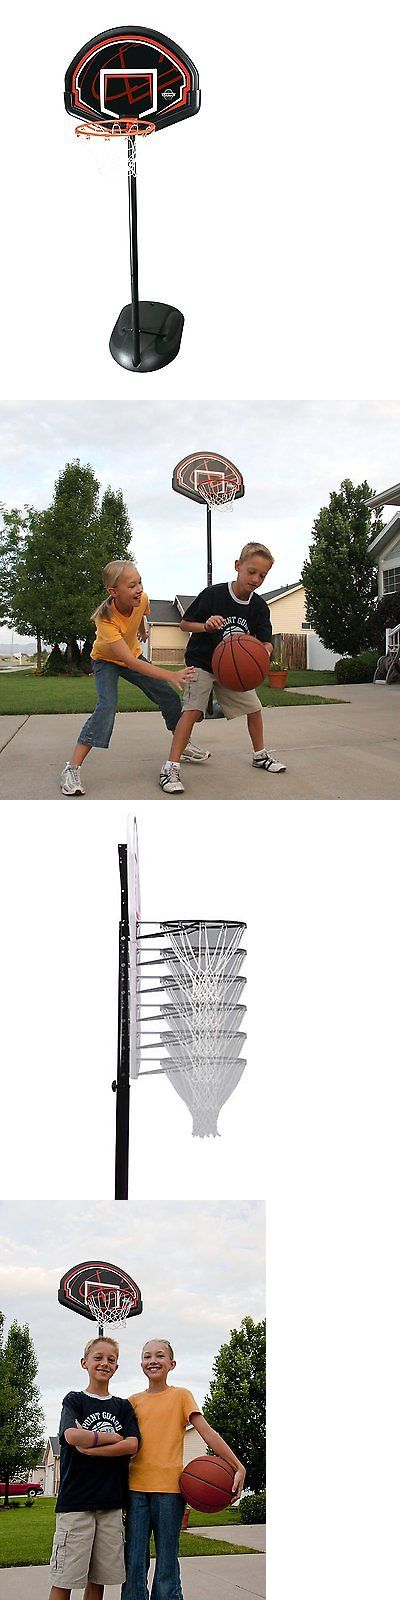 Backboard Systems 21196: Lifetime 90022 Youth Height Adjustable Portable Basketball System BUY IT NOW ONLY: $76.07